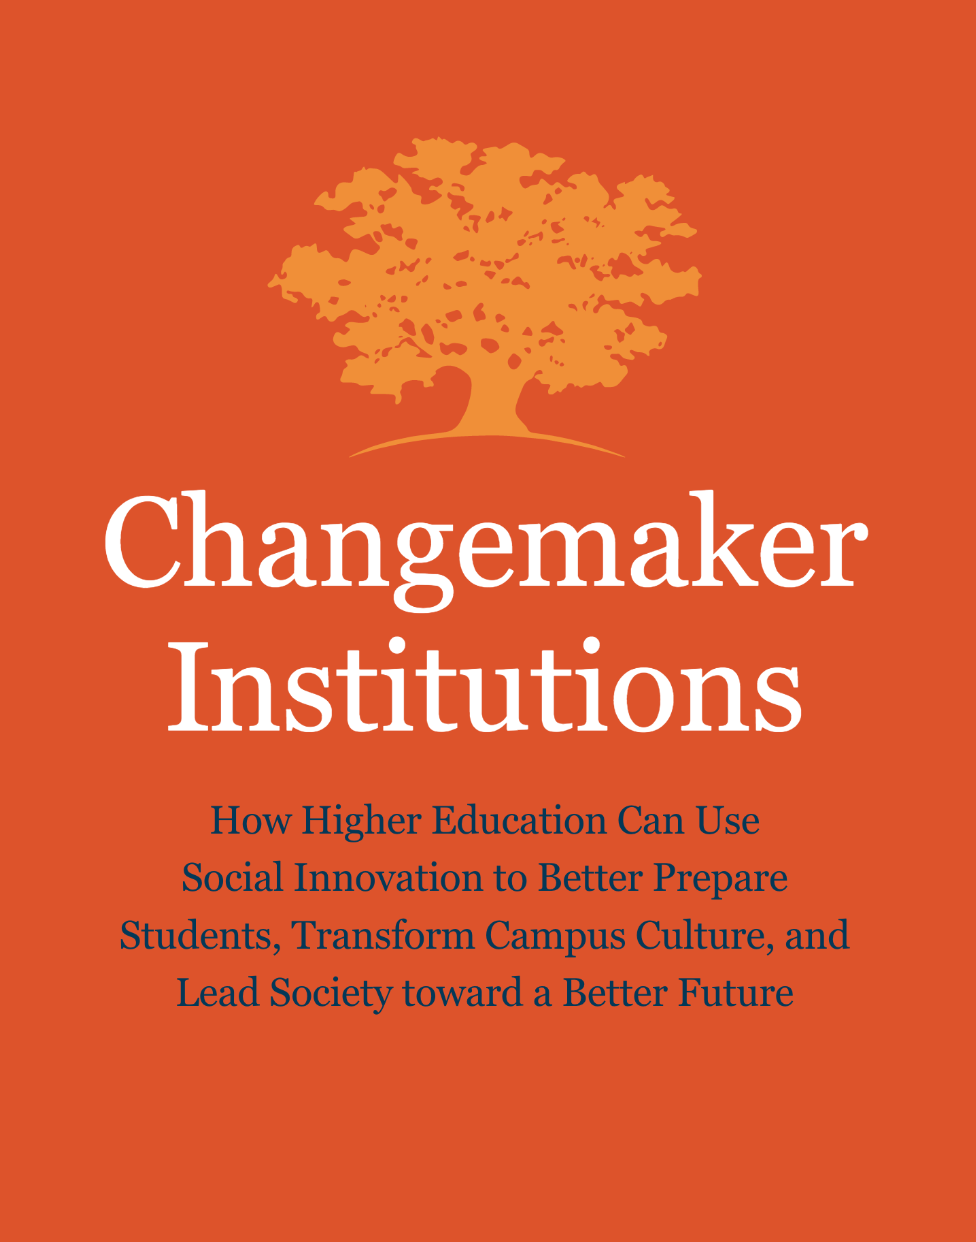 Changemaker Institutions